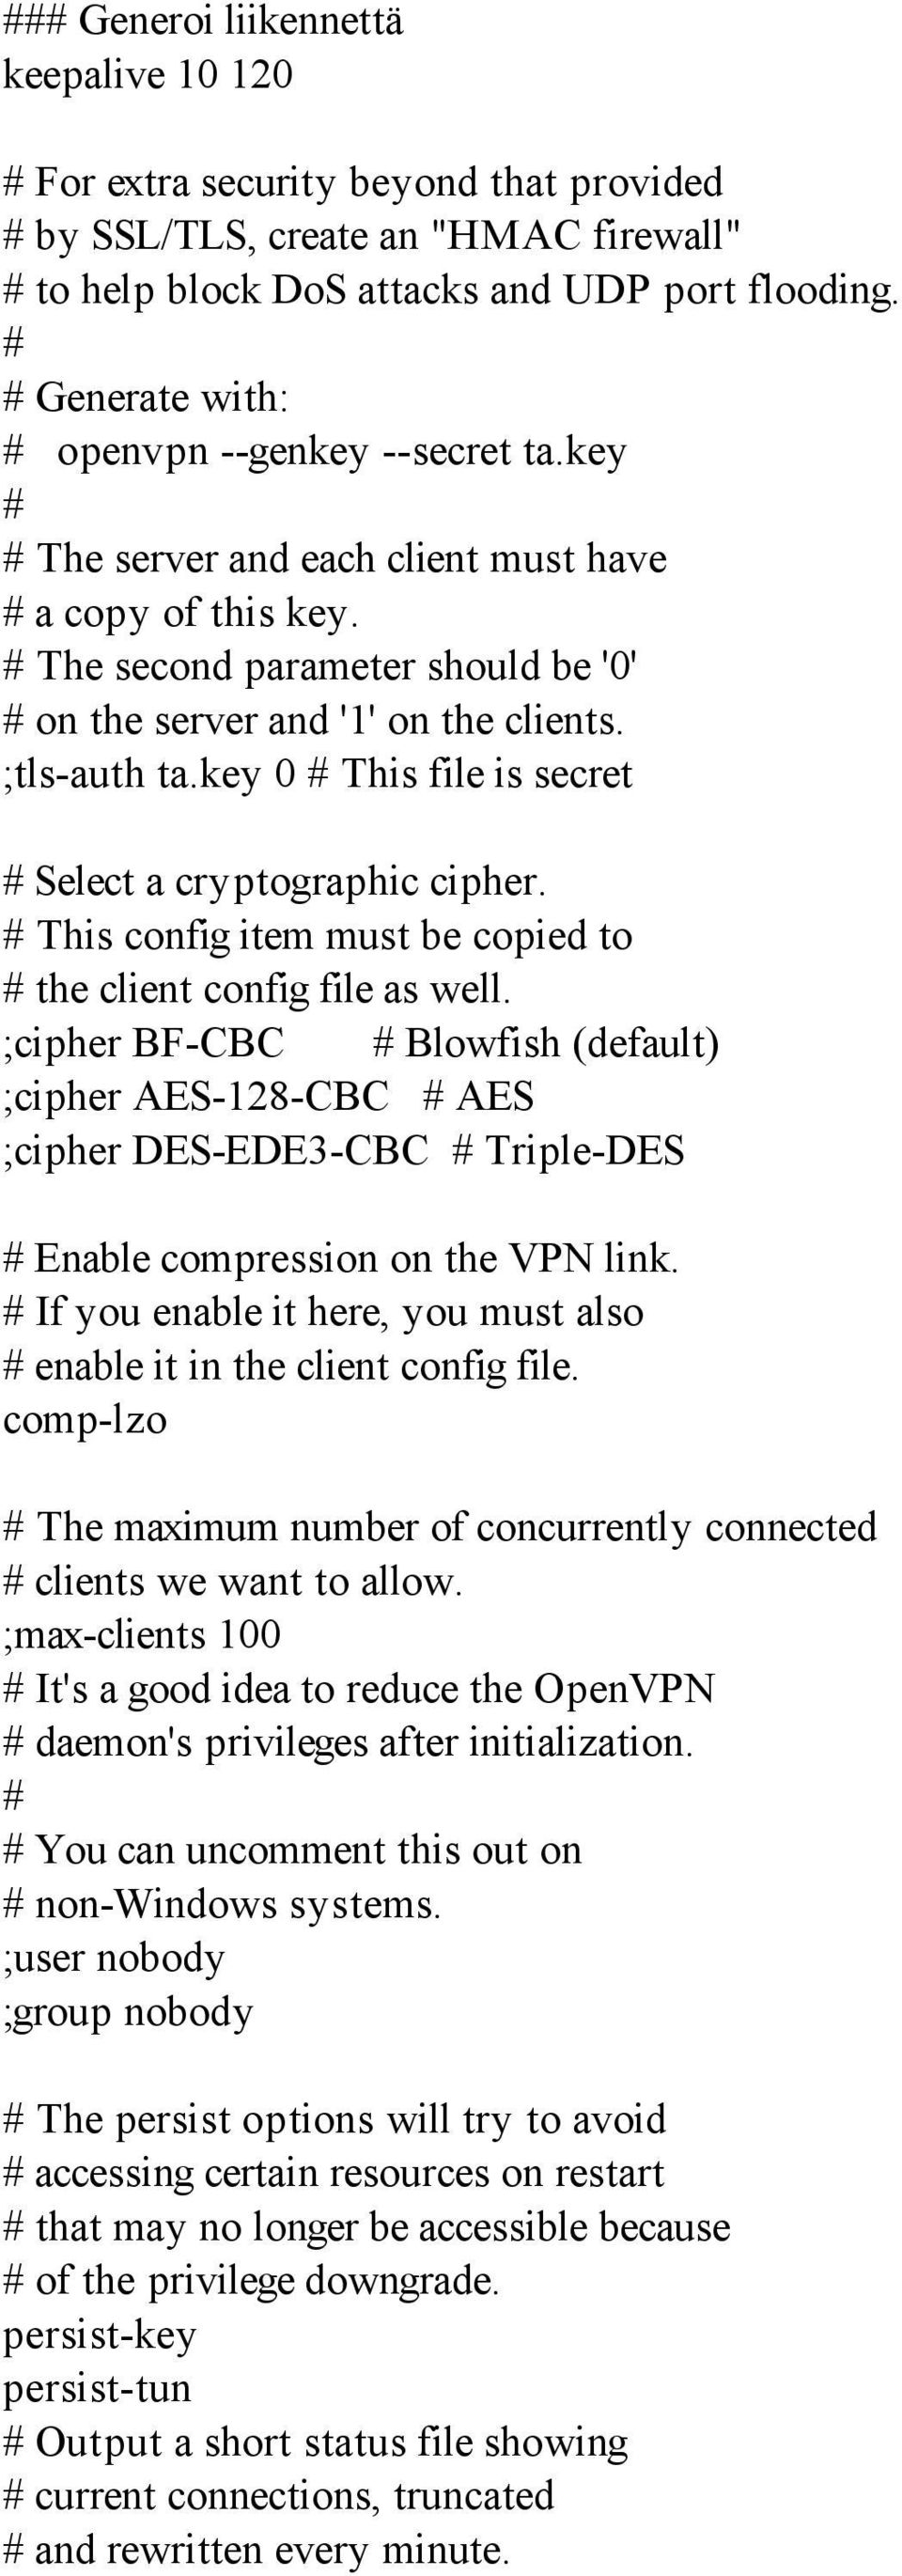 ;tls-auth ta.key 0 # This file is secret # Select a cryptographic cipher. # This config item must be copied to # the client config file as well.